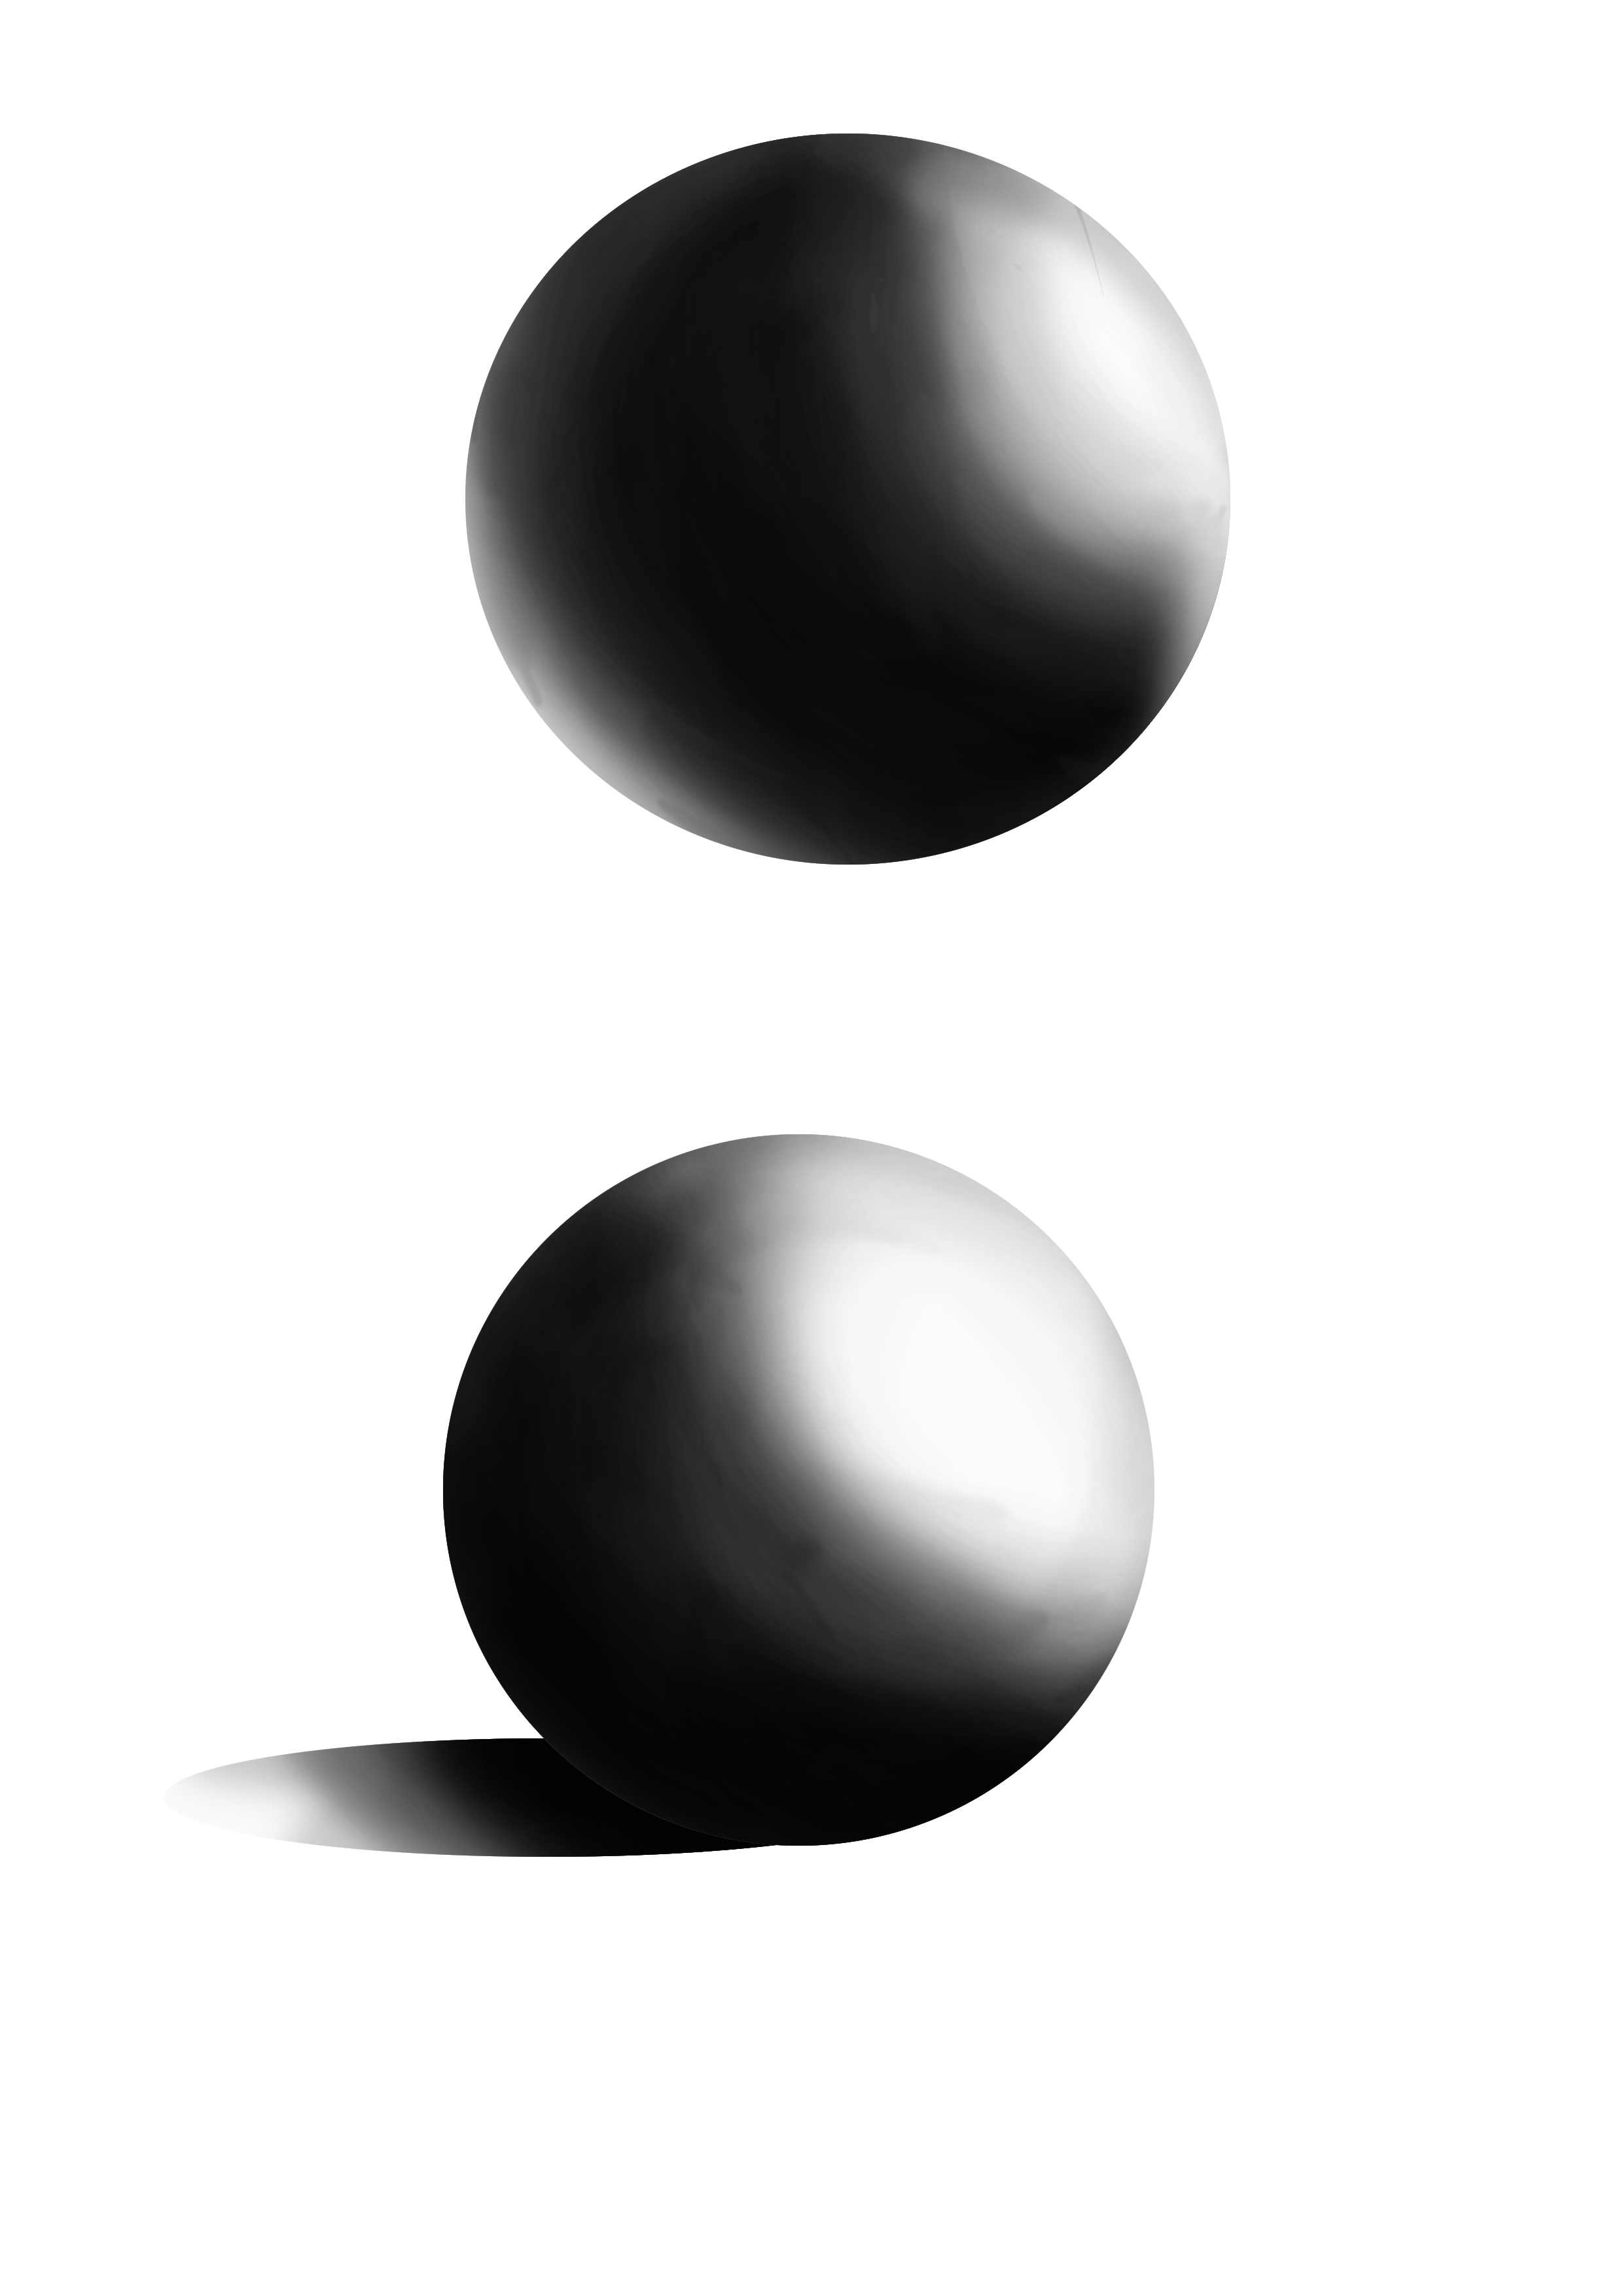 Drawing shade sphere. Advanced lighting and values